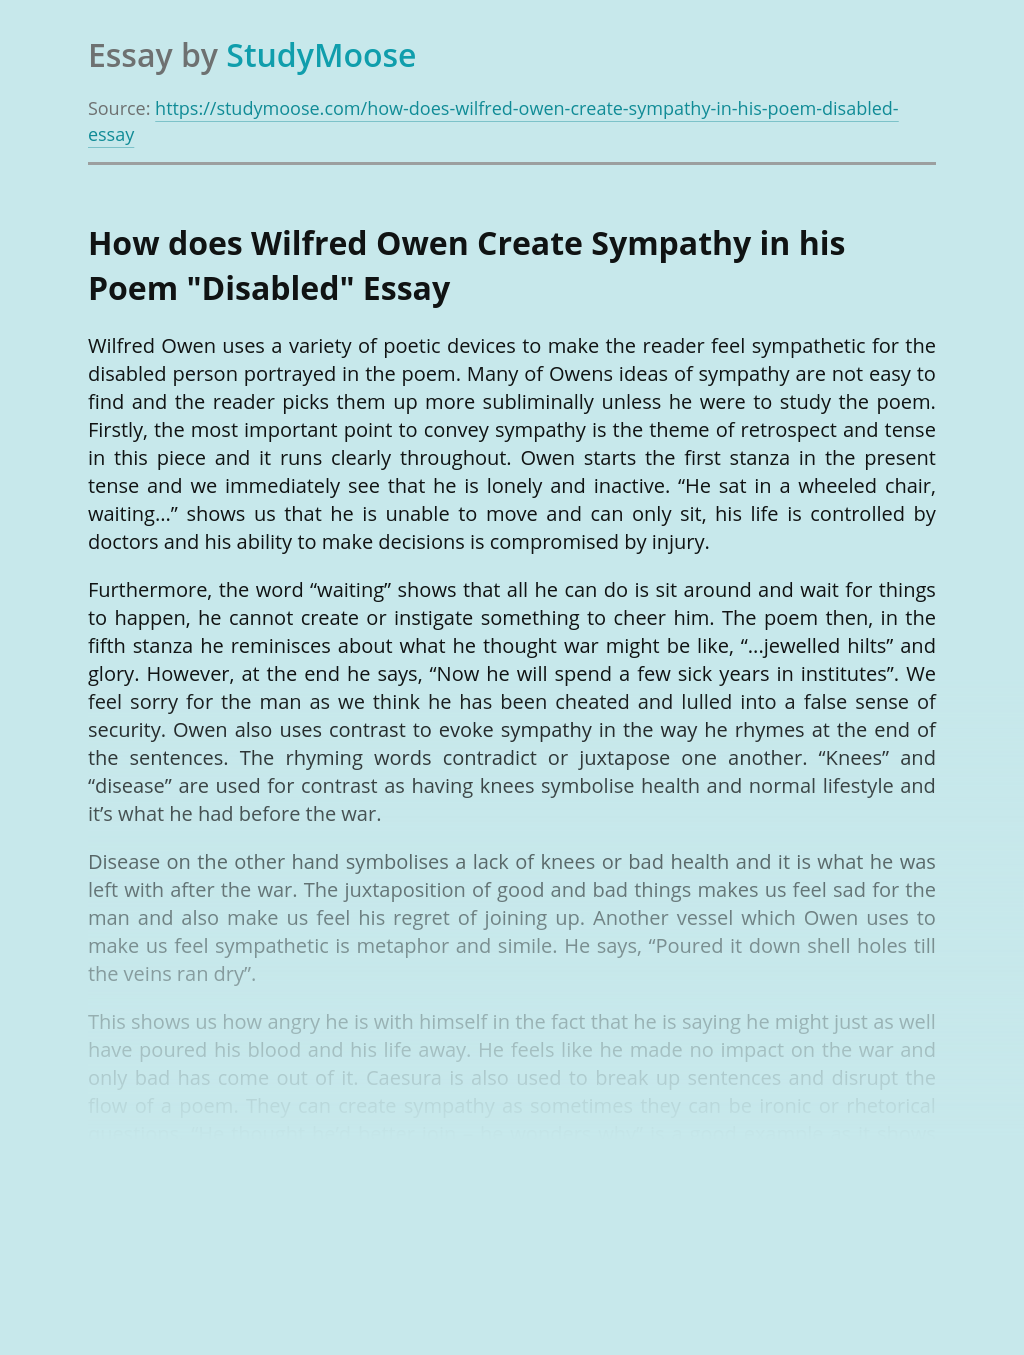 """How does Wilfred Owen Create Sympathy in His Poem """"Disabled"""""""